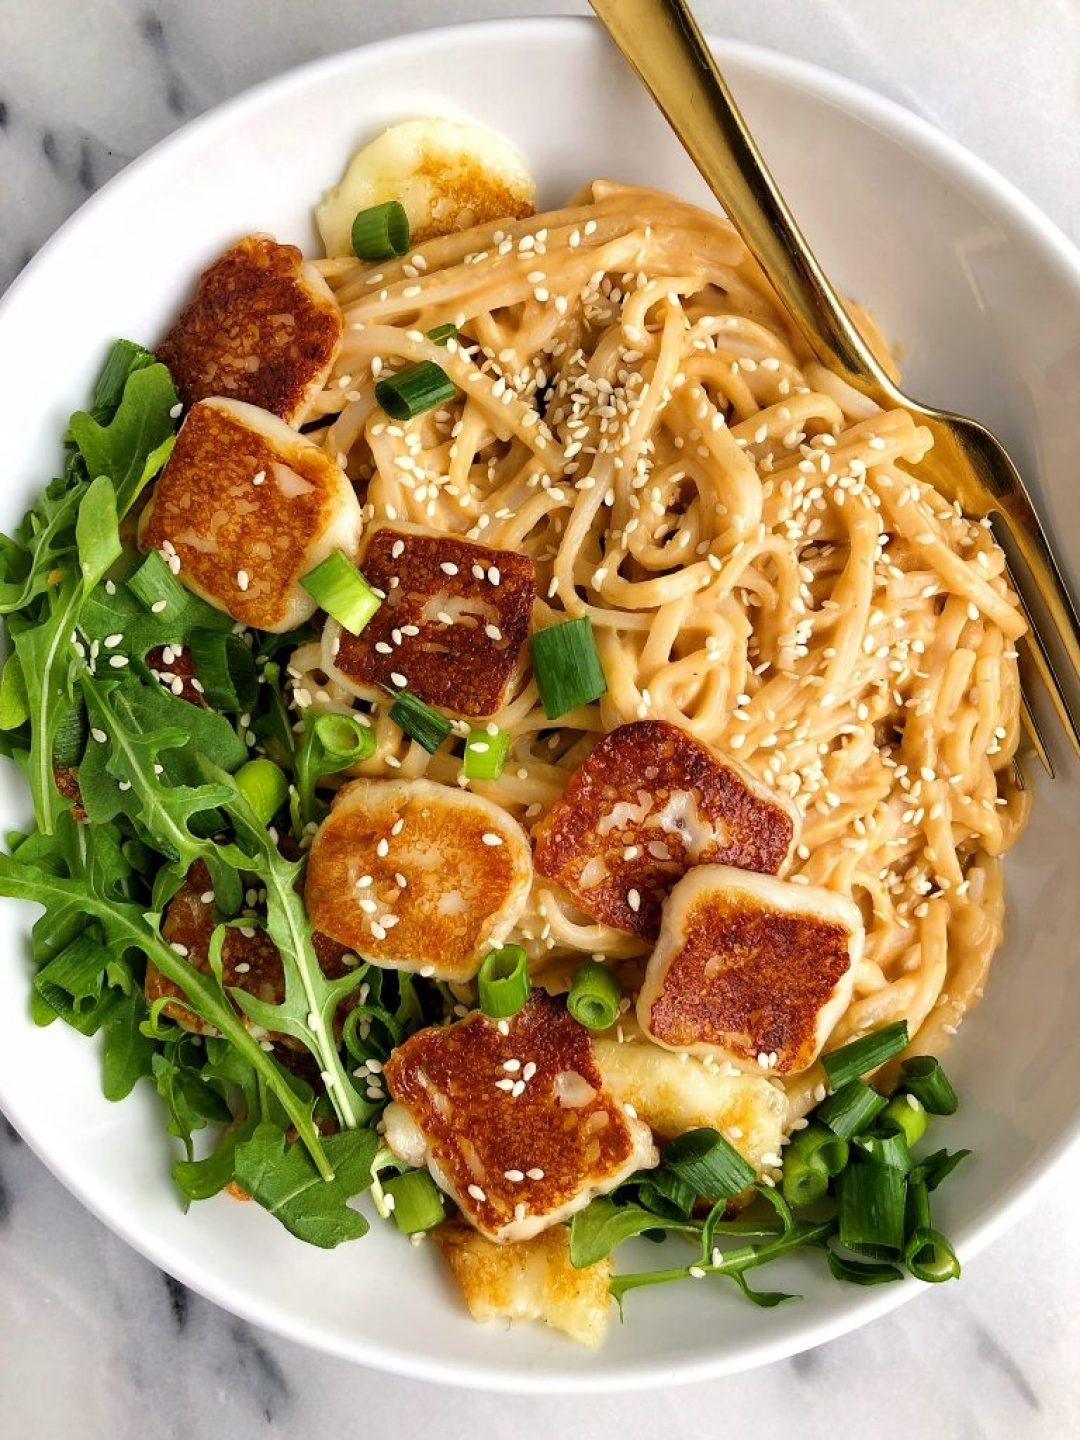 Easy Sesame Peanut Tahini Noodles with Halloumi for an healthier spin on a takeout noodle bowl! Made with all gluten-free ingredients.